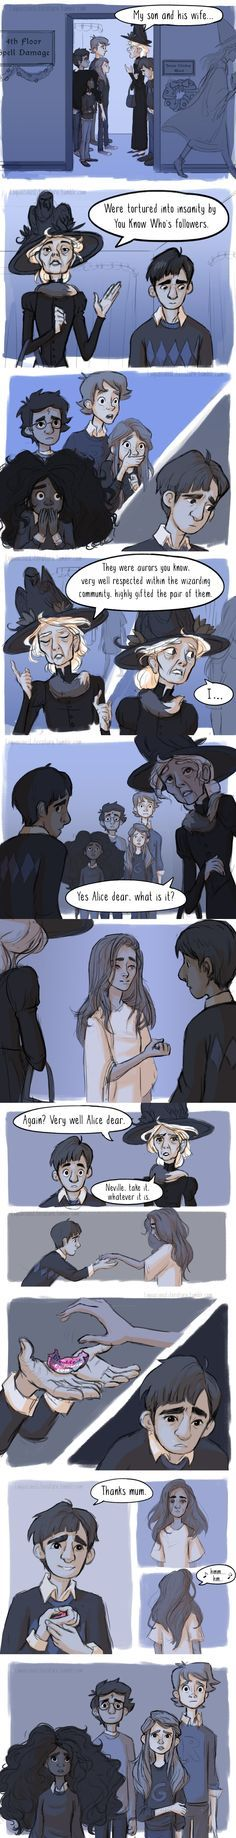 Harry Potter Book 5 Scene---I love this! So beautiful! (Plus Hermione's hair is just fantastic)